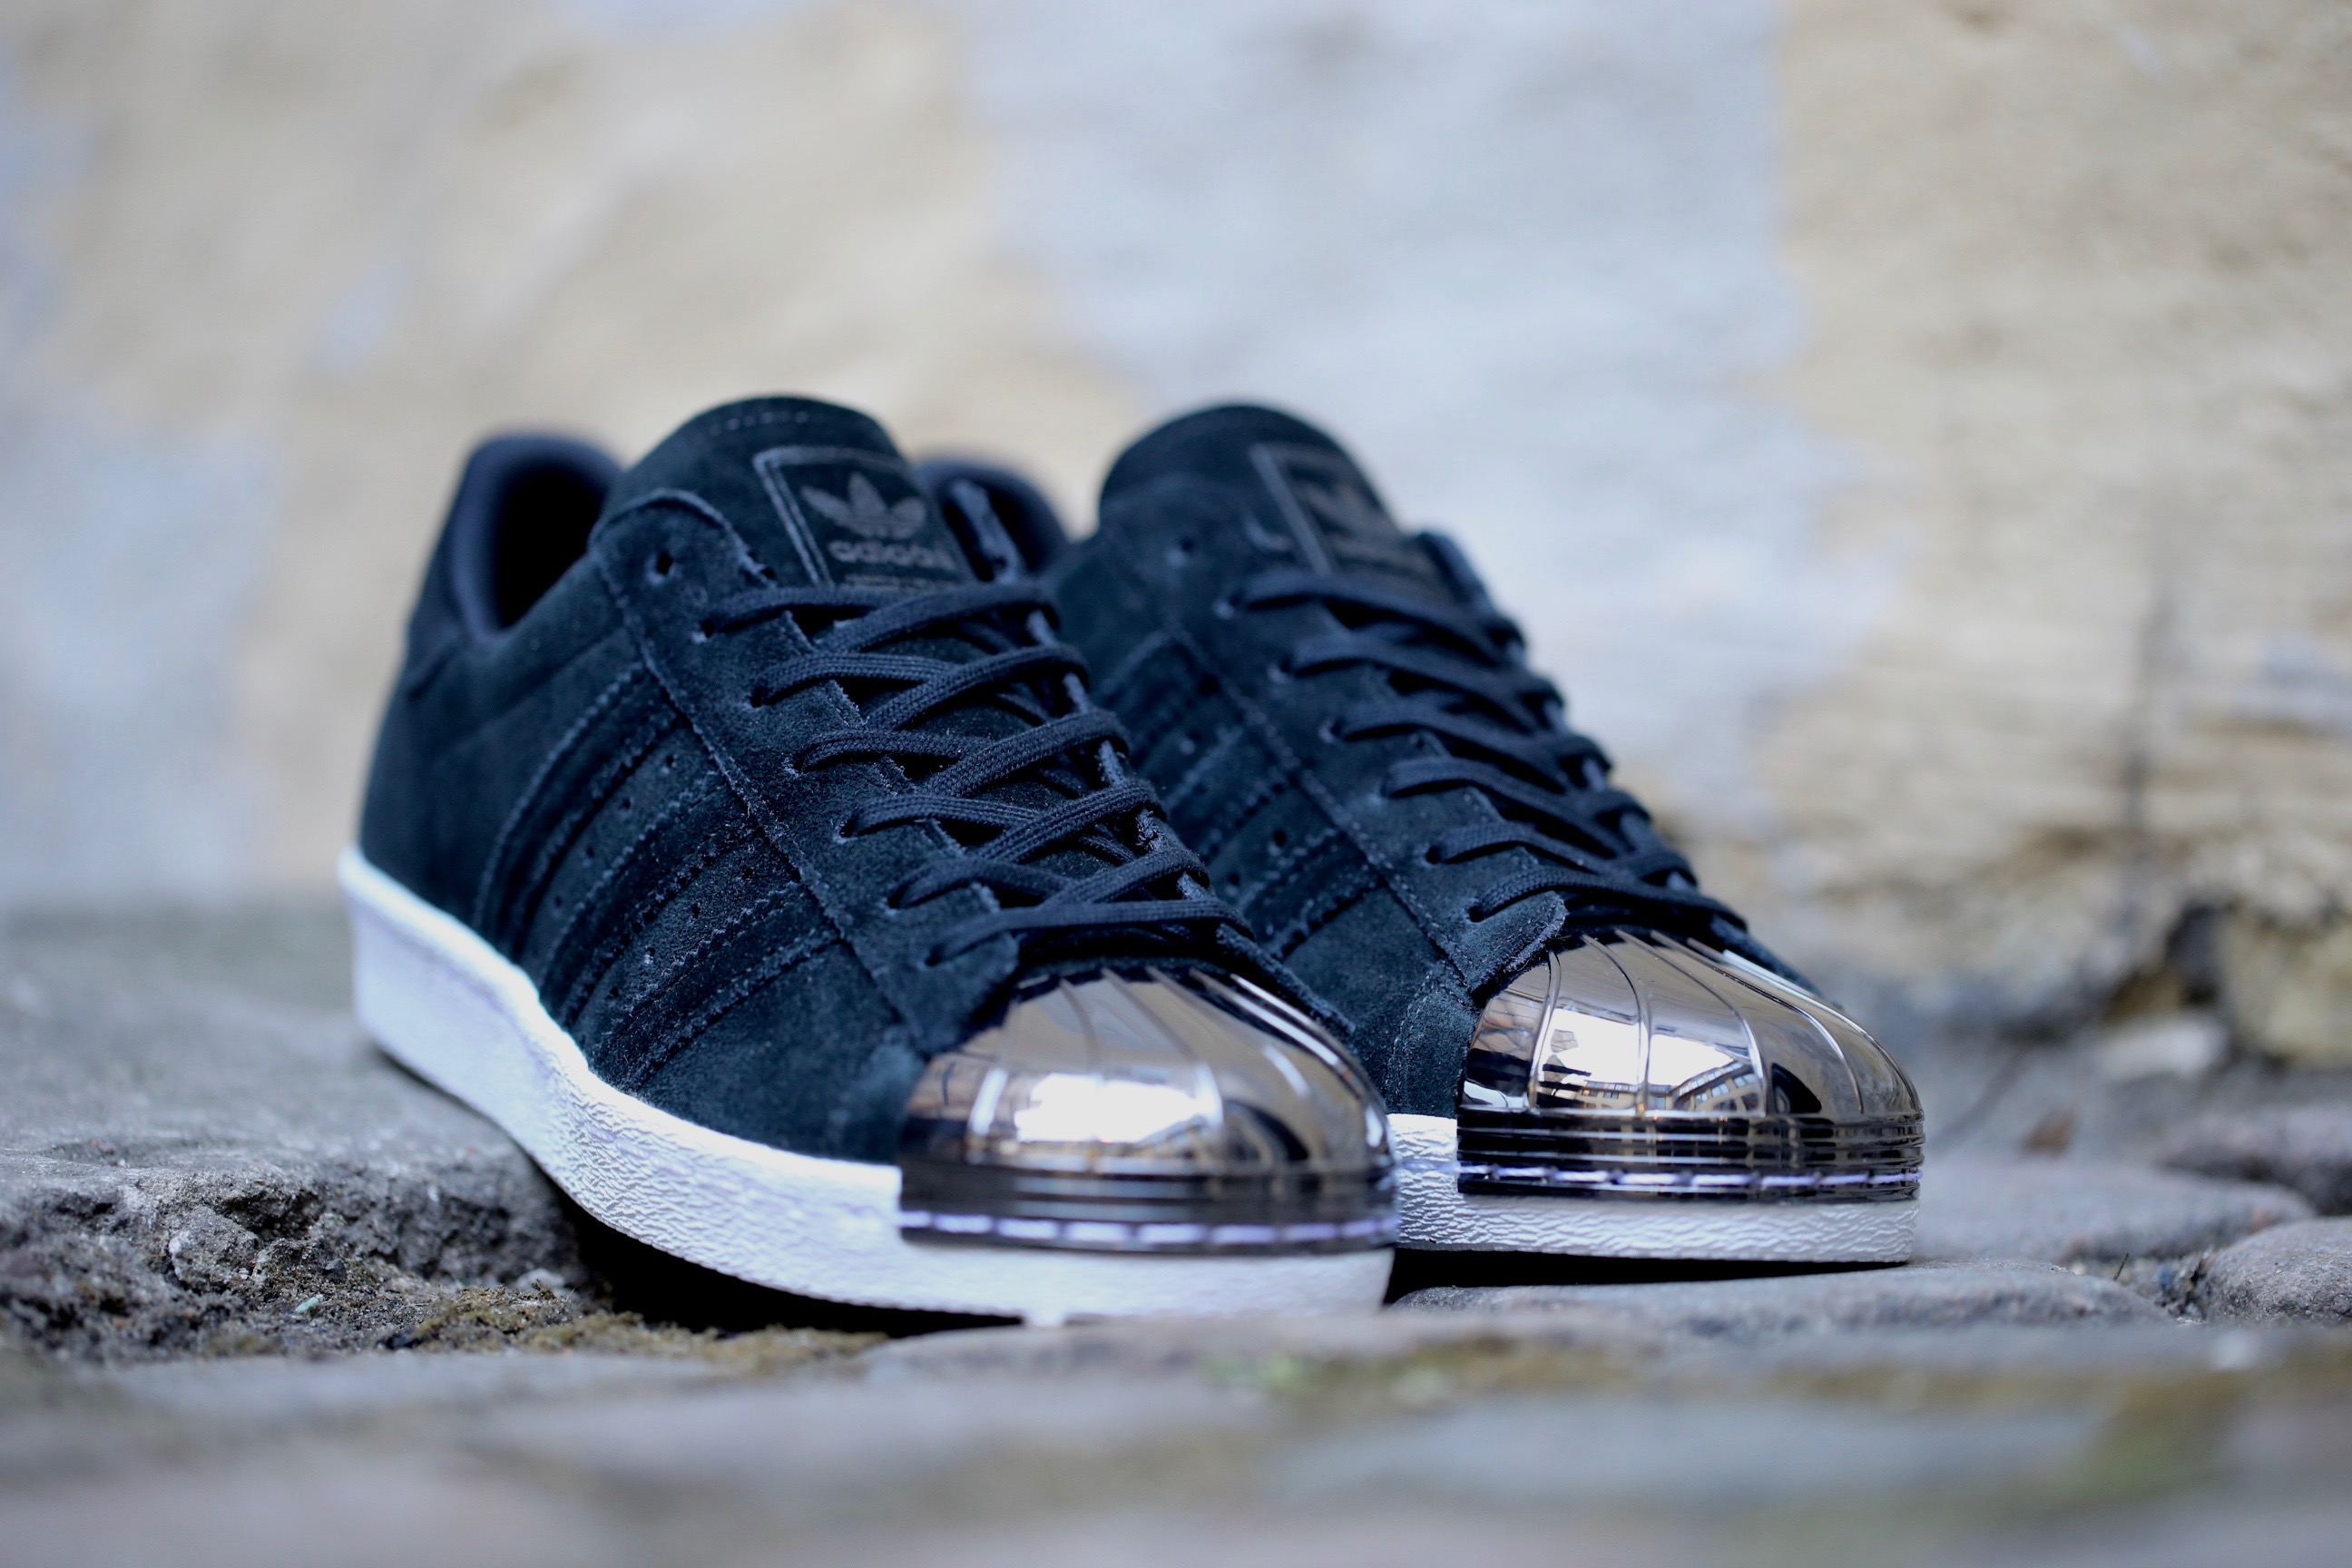 adidas superstar 80s metal toe